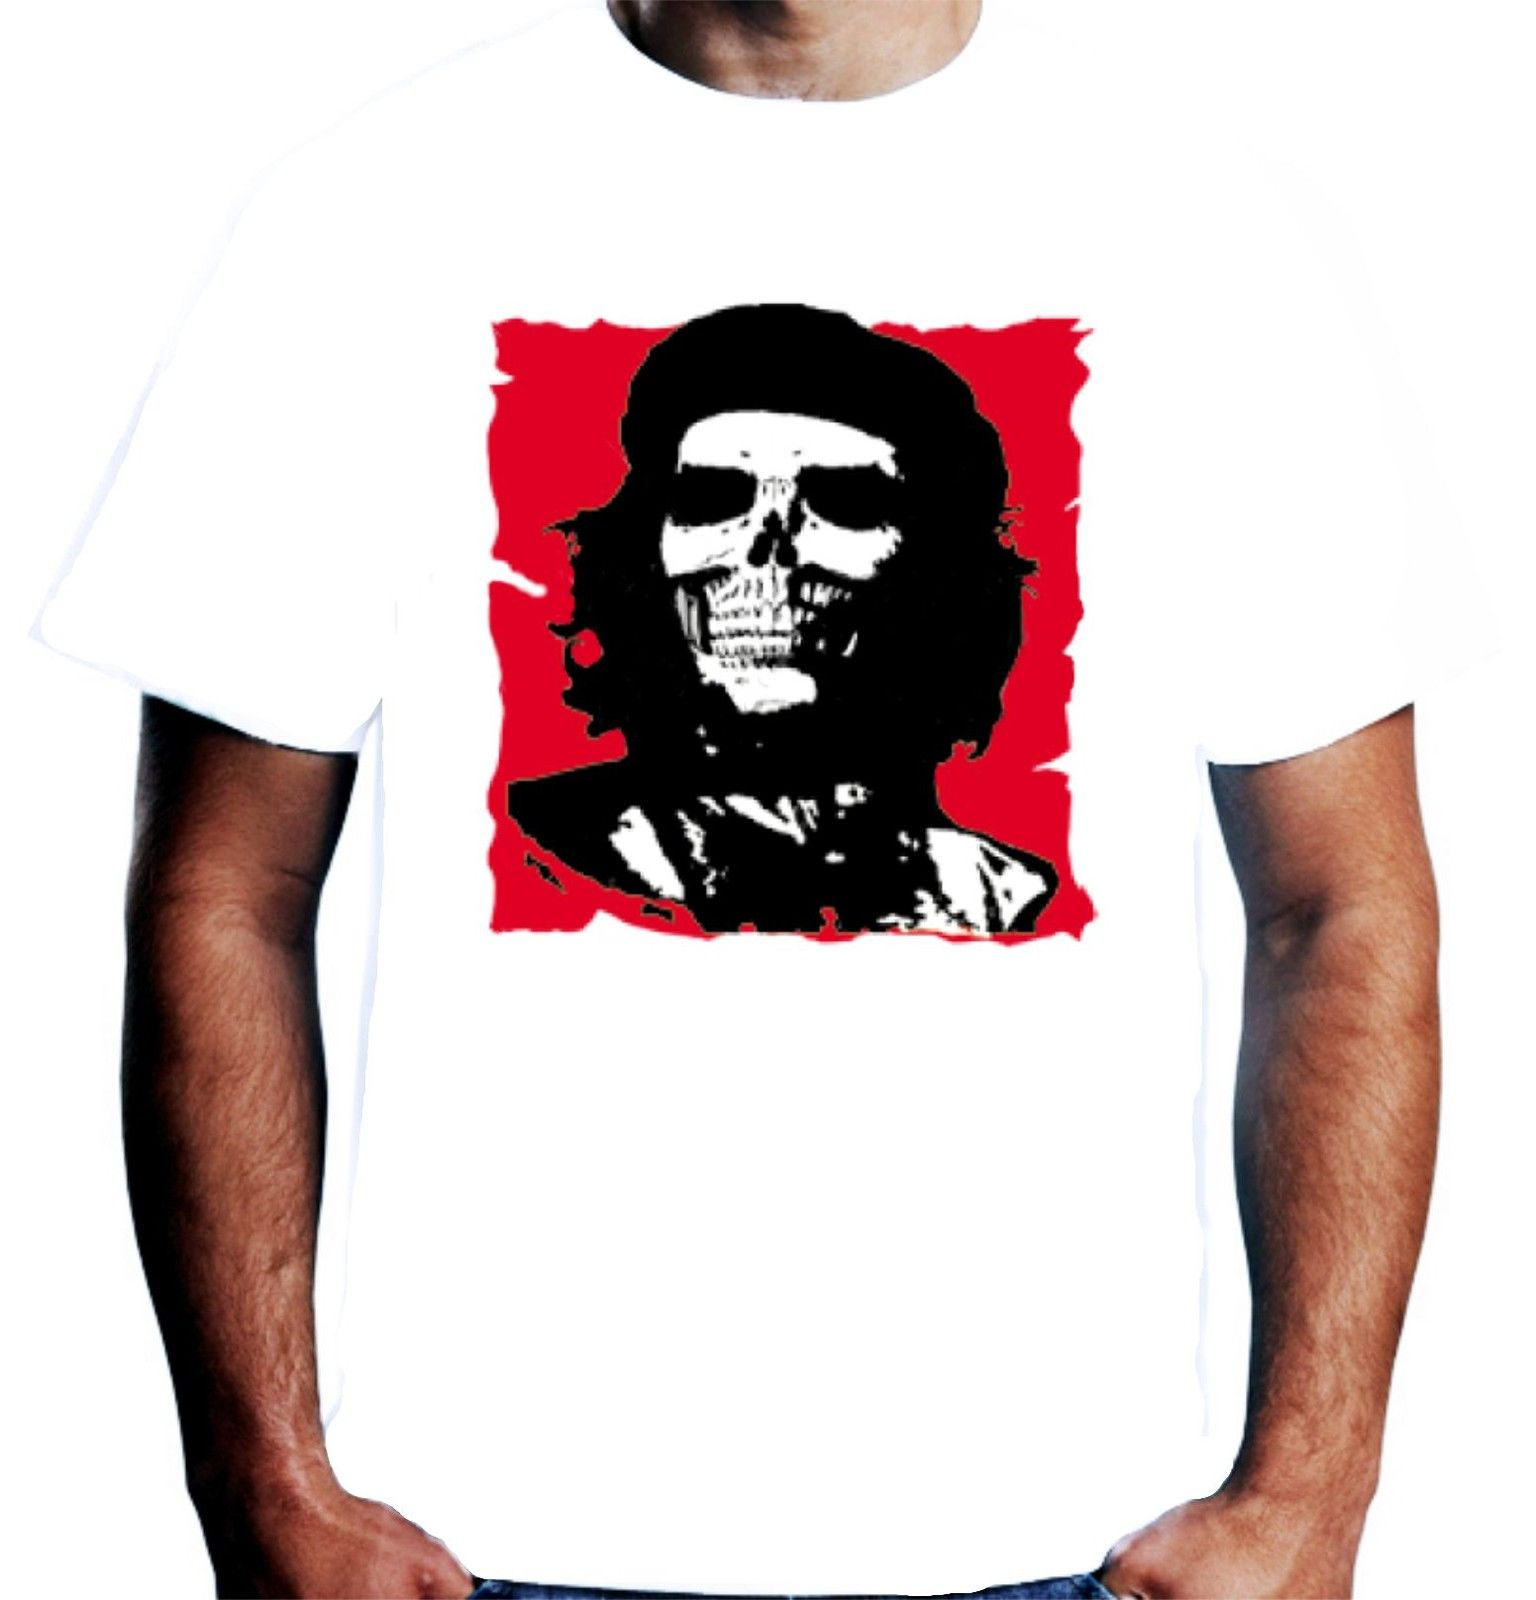 2018 Fashion New Mens Che Guevara Zombie T Shirt Pop Art Revolution Cuba Men  T Shirt Print Cotton Short Sleeve T shirt-in T-Shirts from Men s Clothing  on ... 594d012a2be9